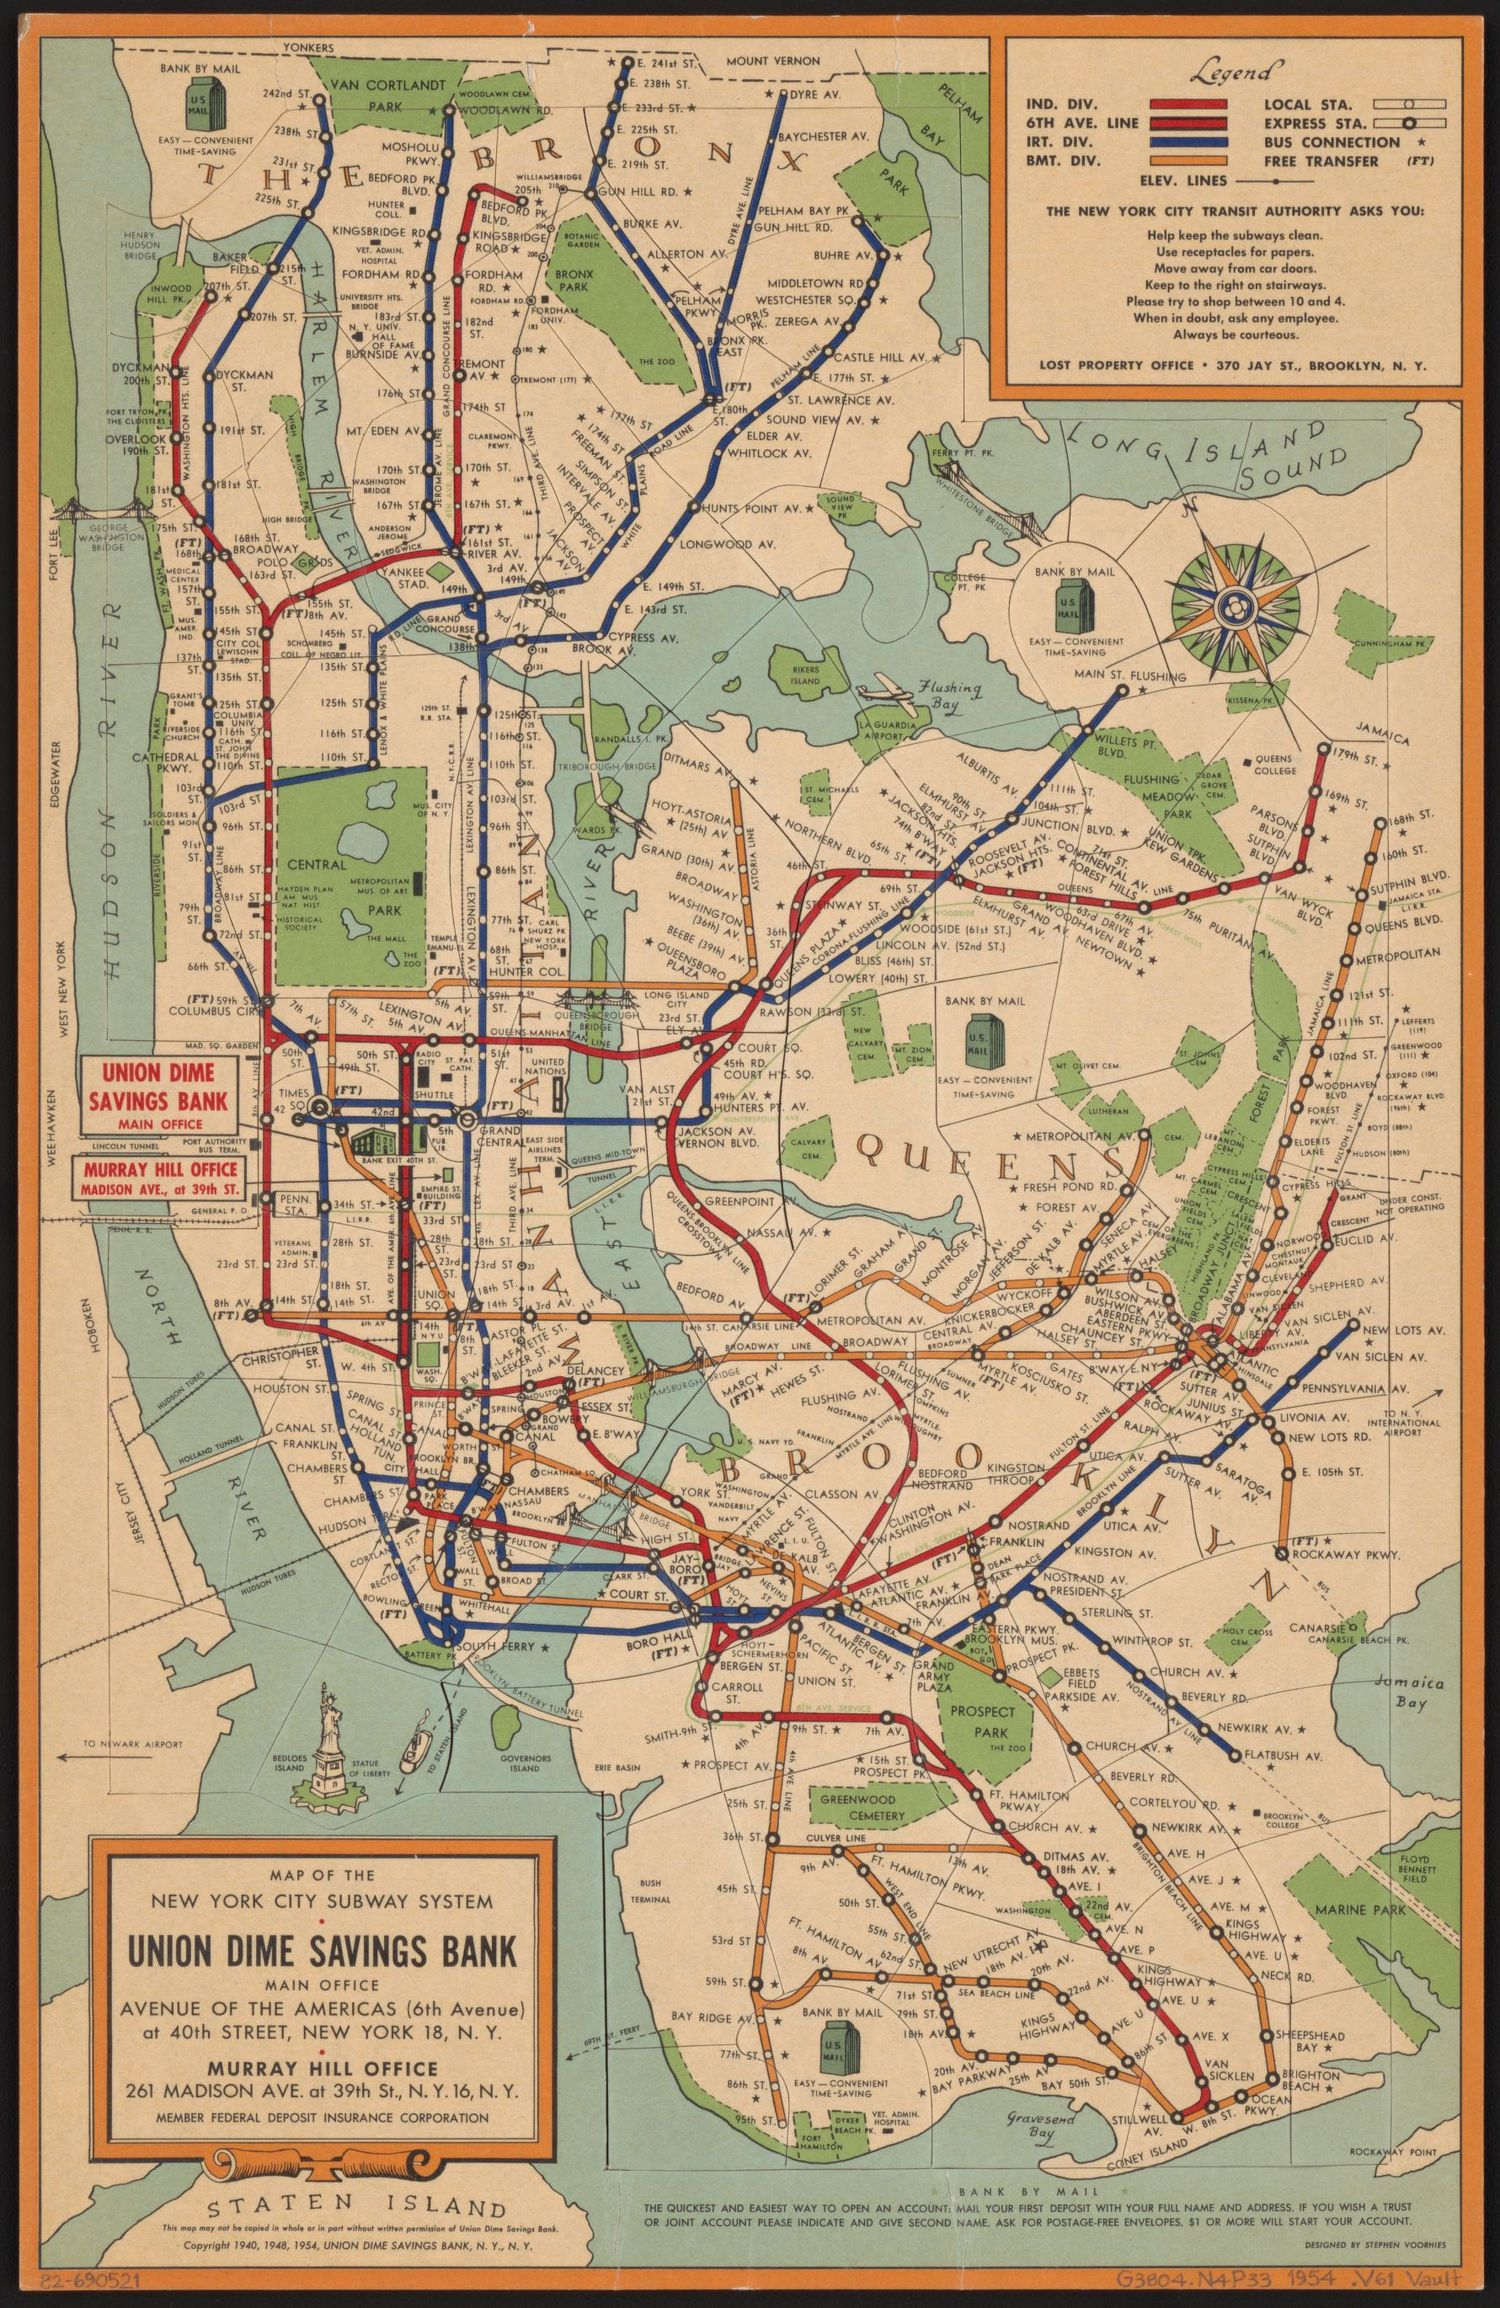 Nyc Subway Map Jpeg.Maps Vintage Map Shows New York City Subway System In 1954